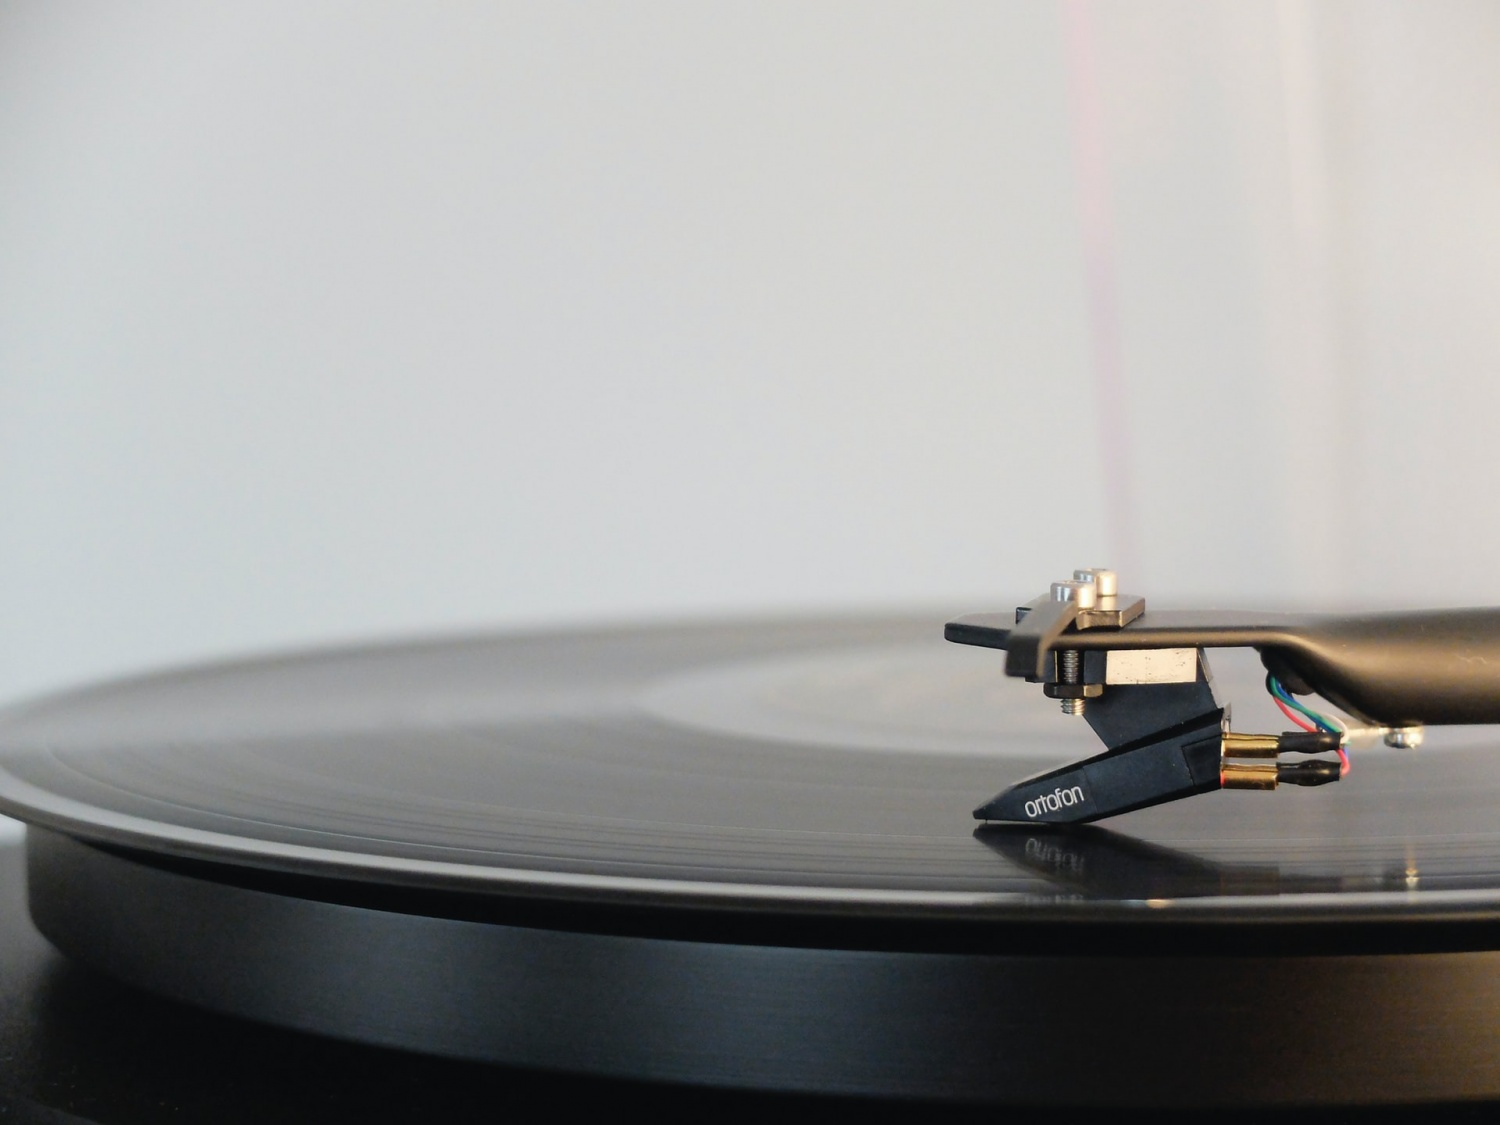 Royalty-Free Music: What is It and Where Can I Find It?